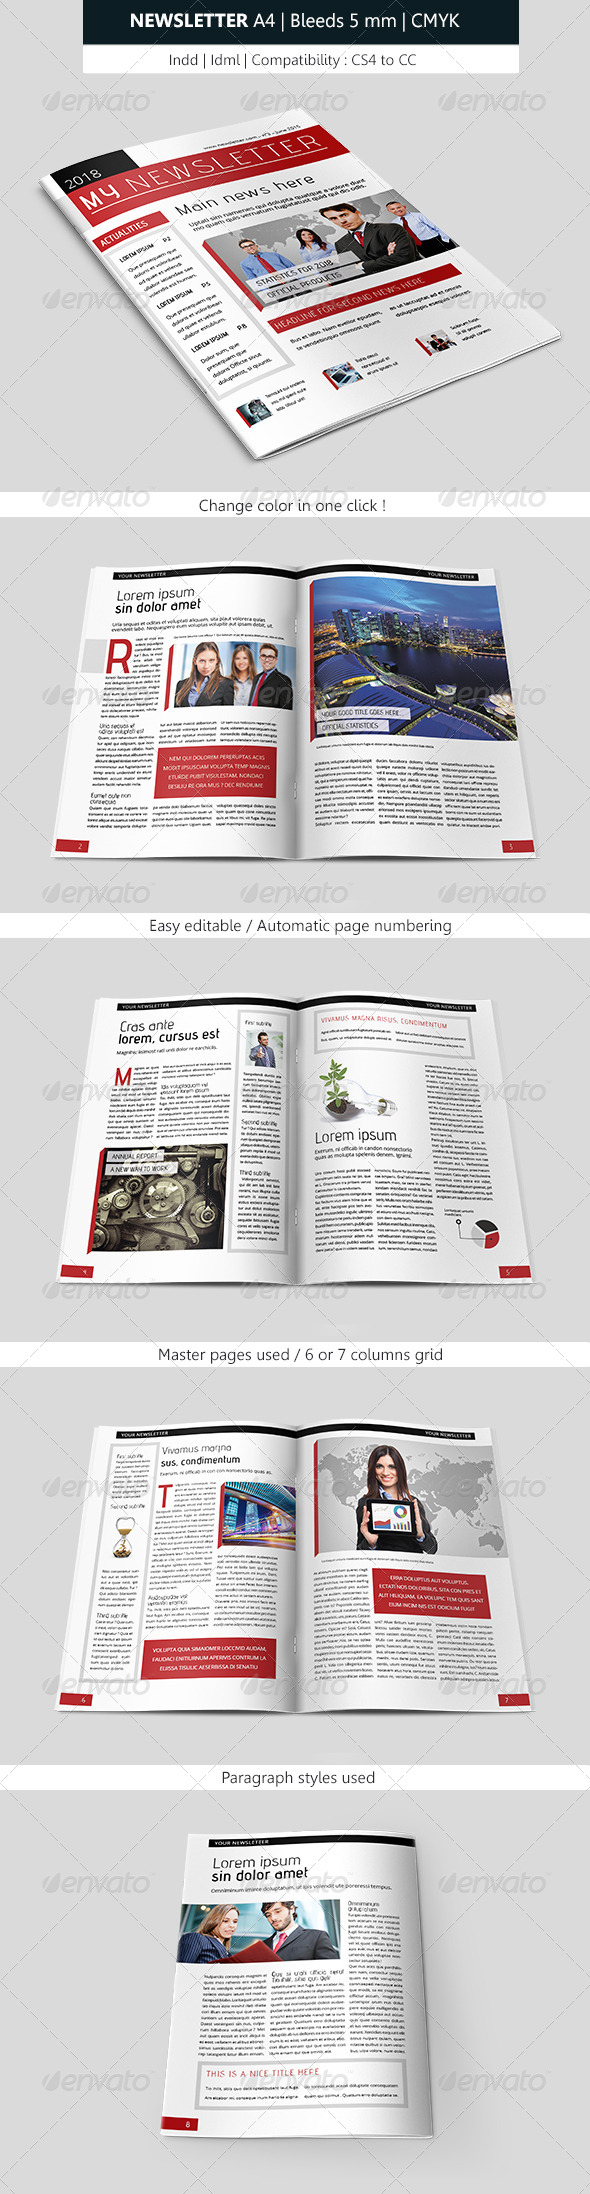 Indesign Templates Torrent  download graphicriver chreagle